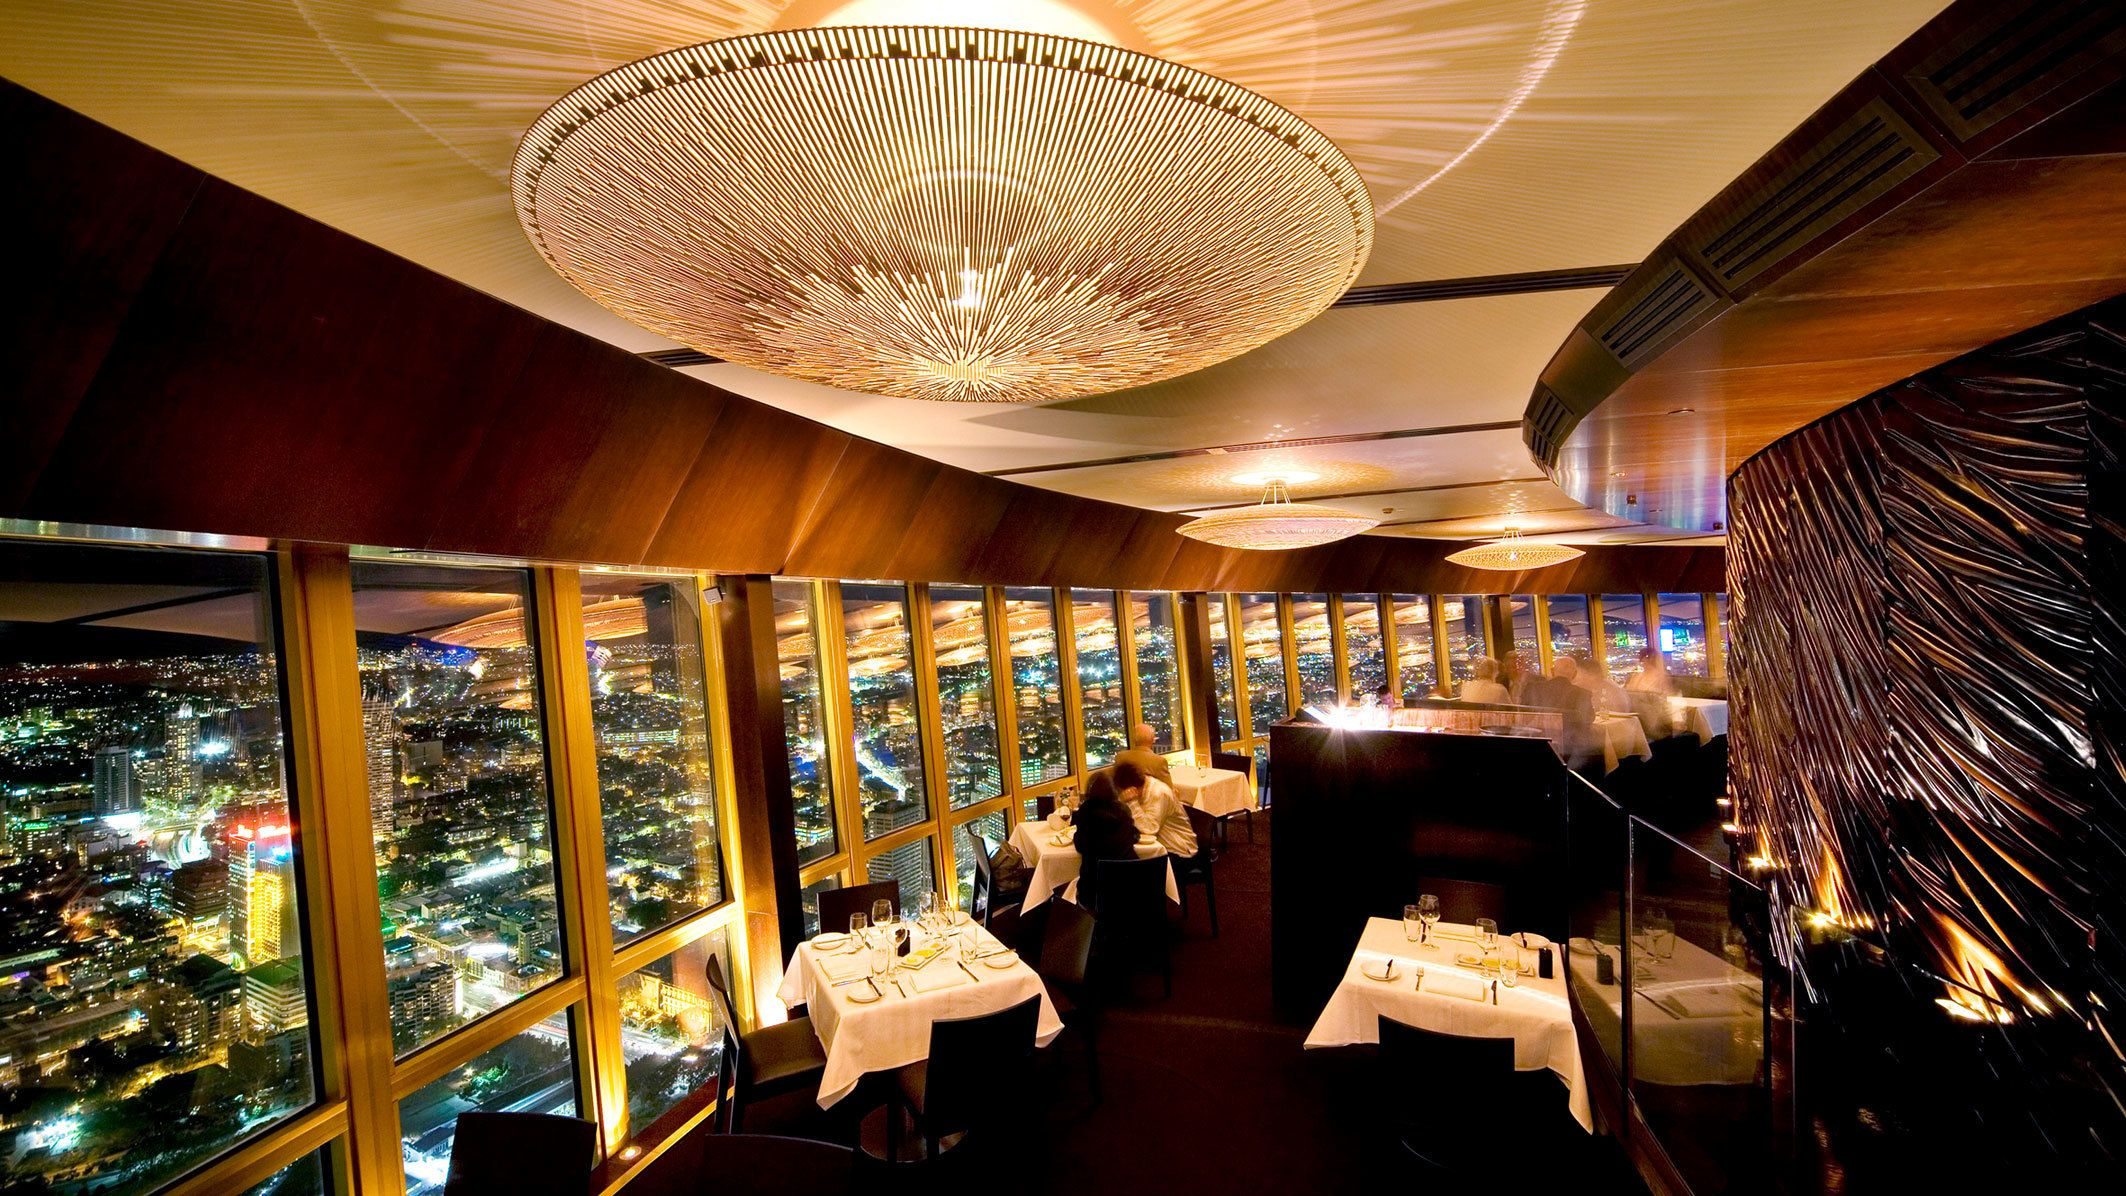 3-Course Lunch or Dinner at 360 Bar & Dining in the Sydney Tower